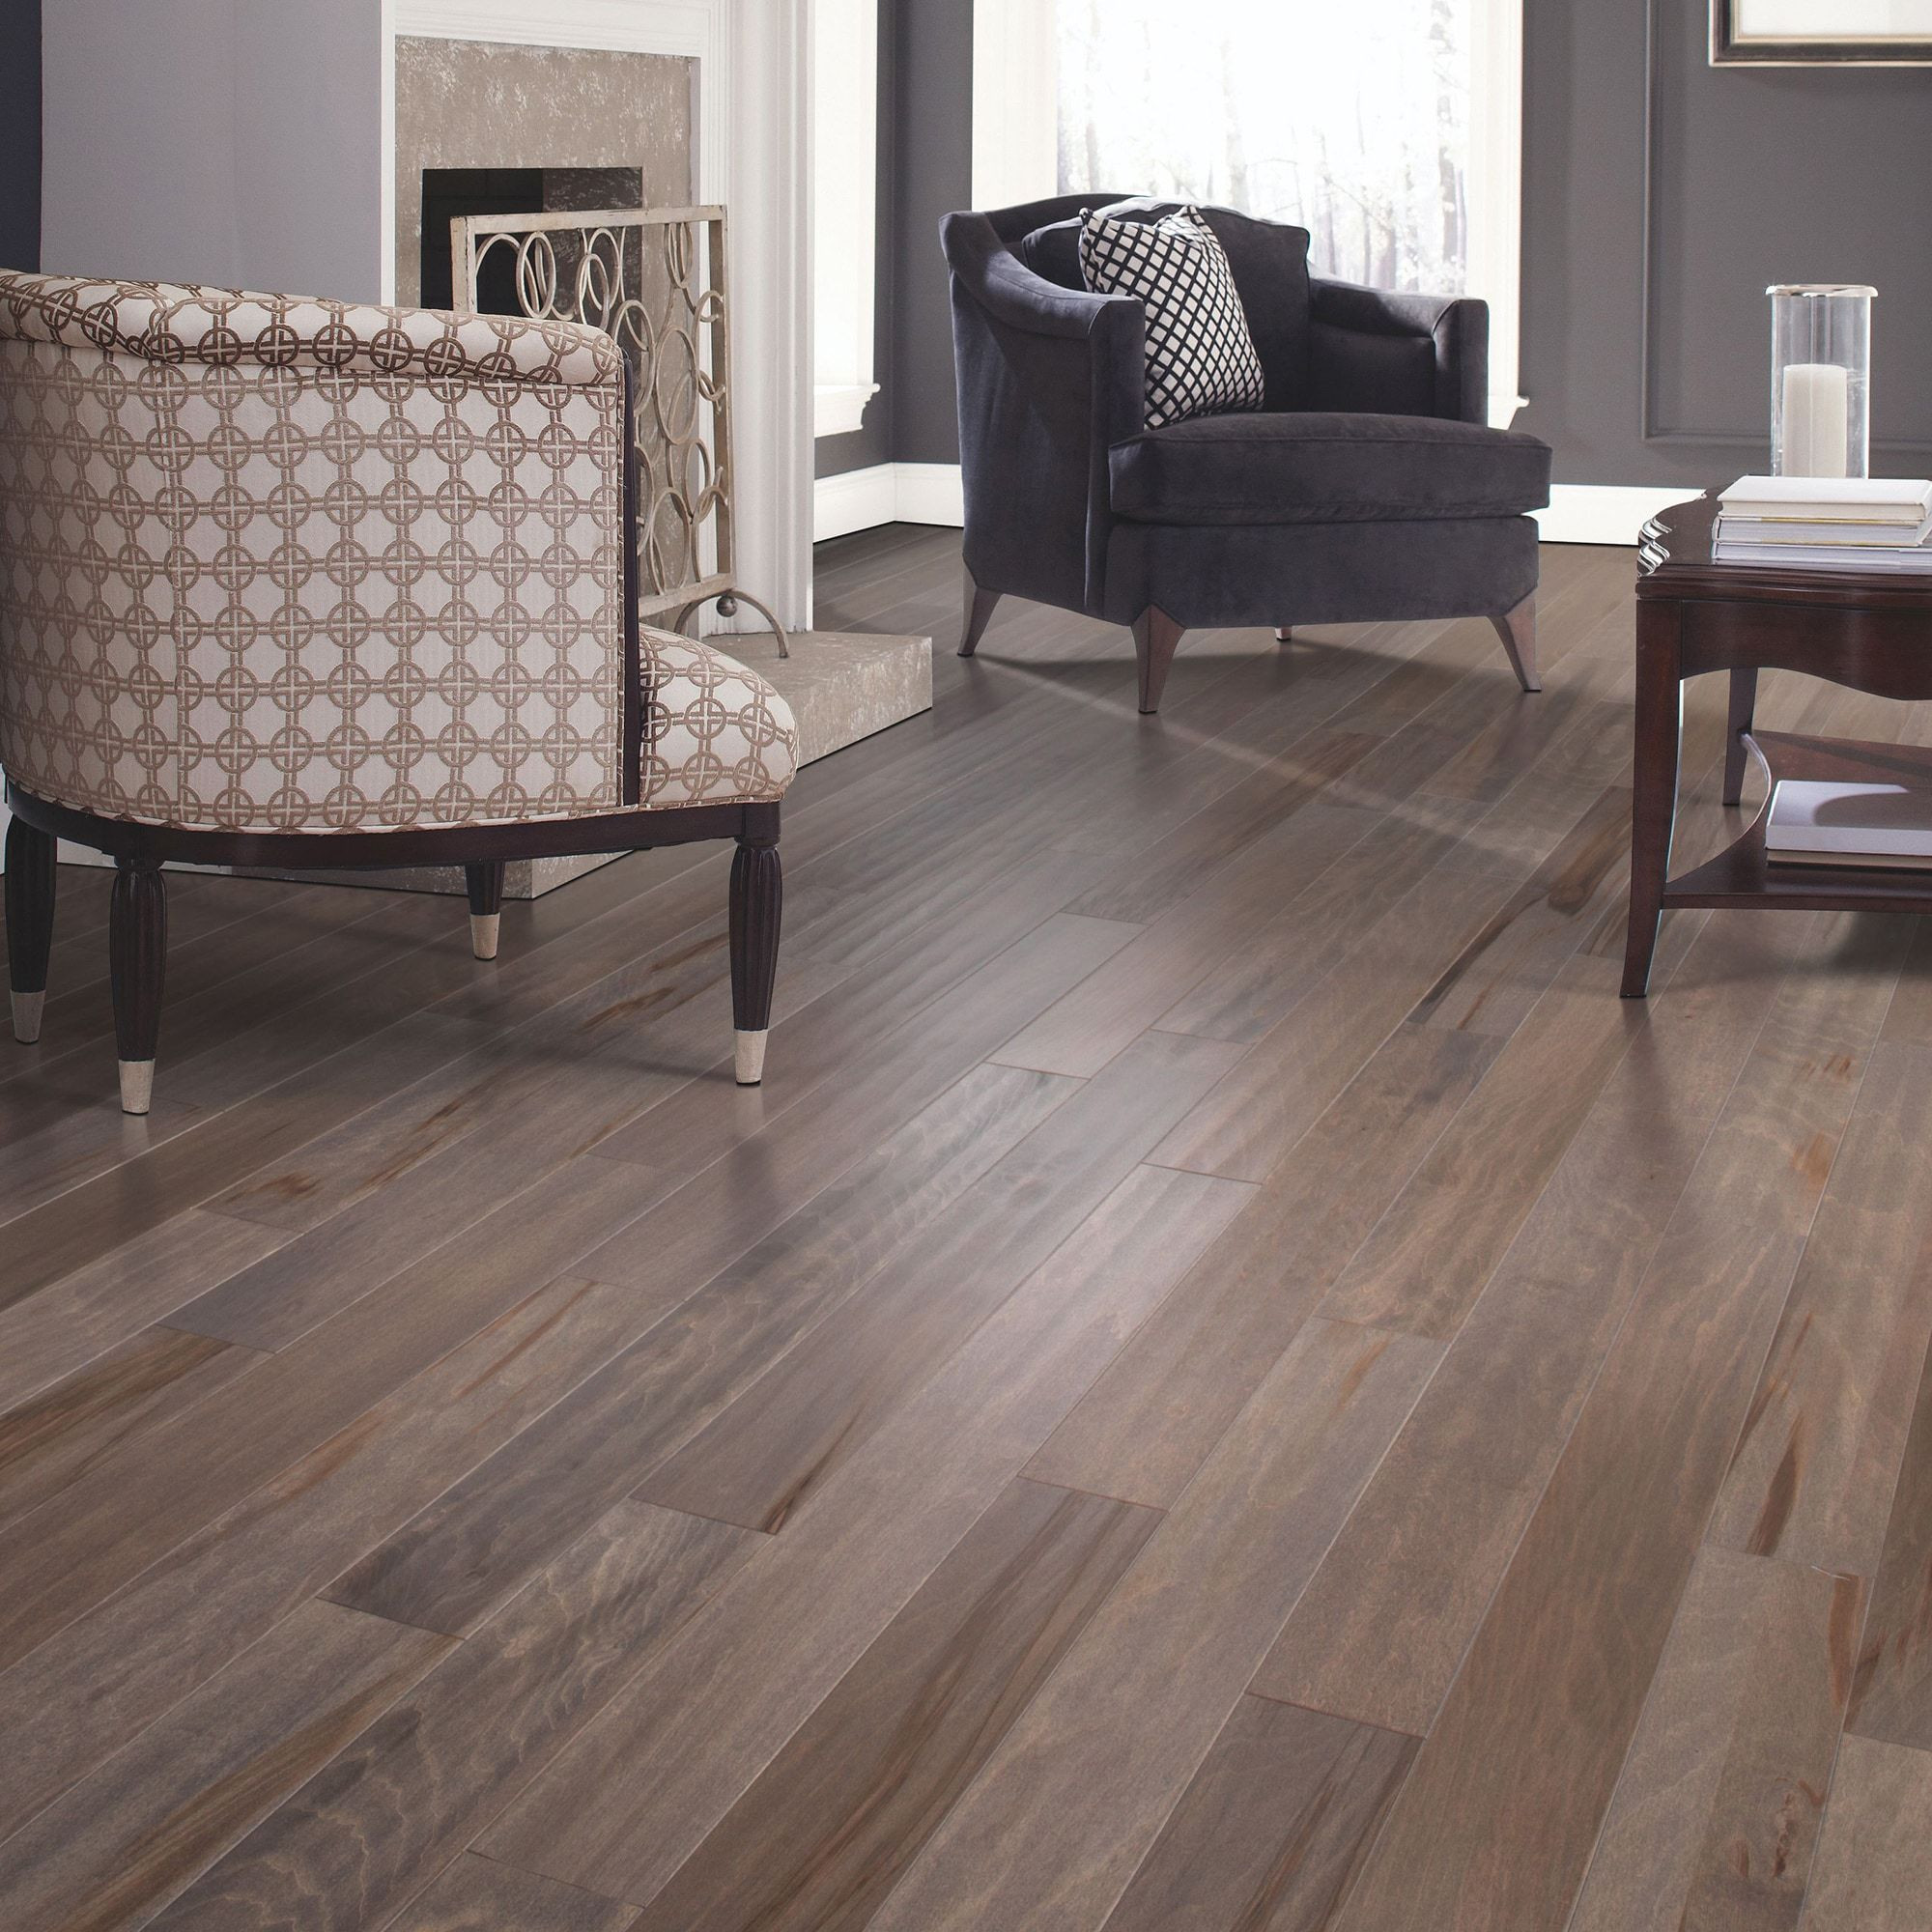 7 inch wide engineered hardwood flooring of builddirecta mohawk flooring engineered hardwood ageless allure within builddirecta mohawk flooring engineered hardwood ageless allure collection